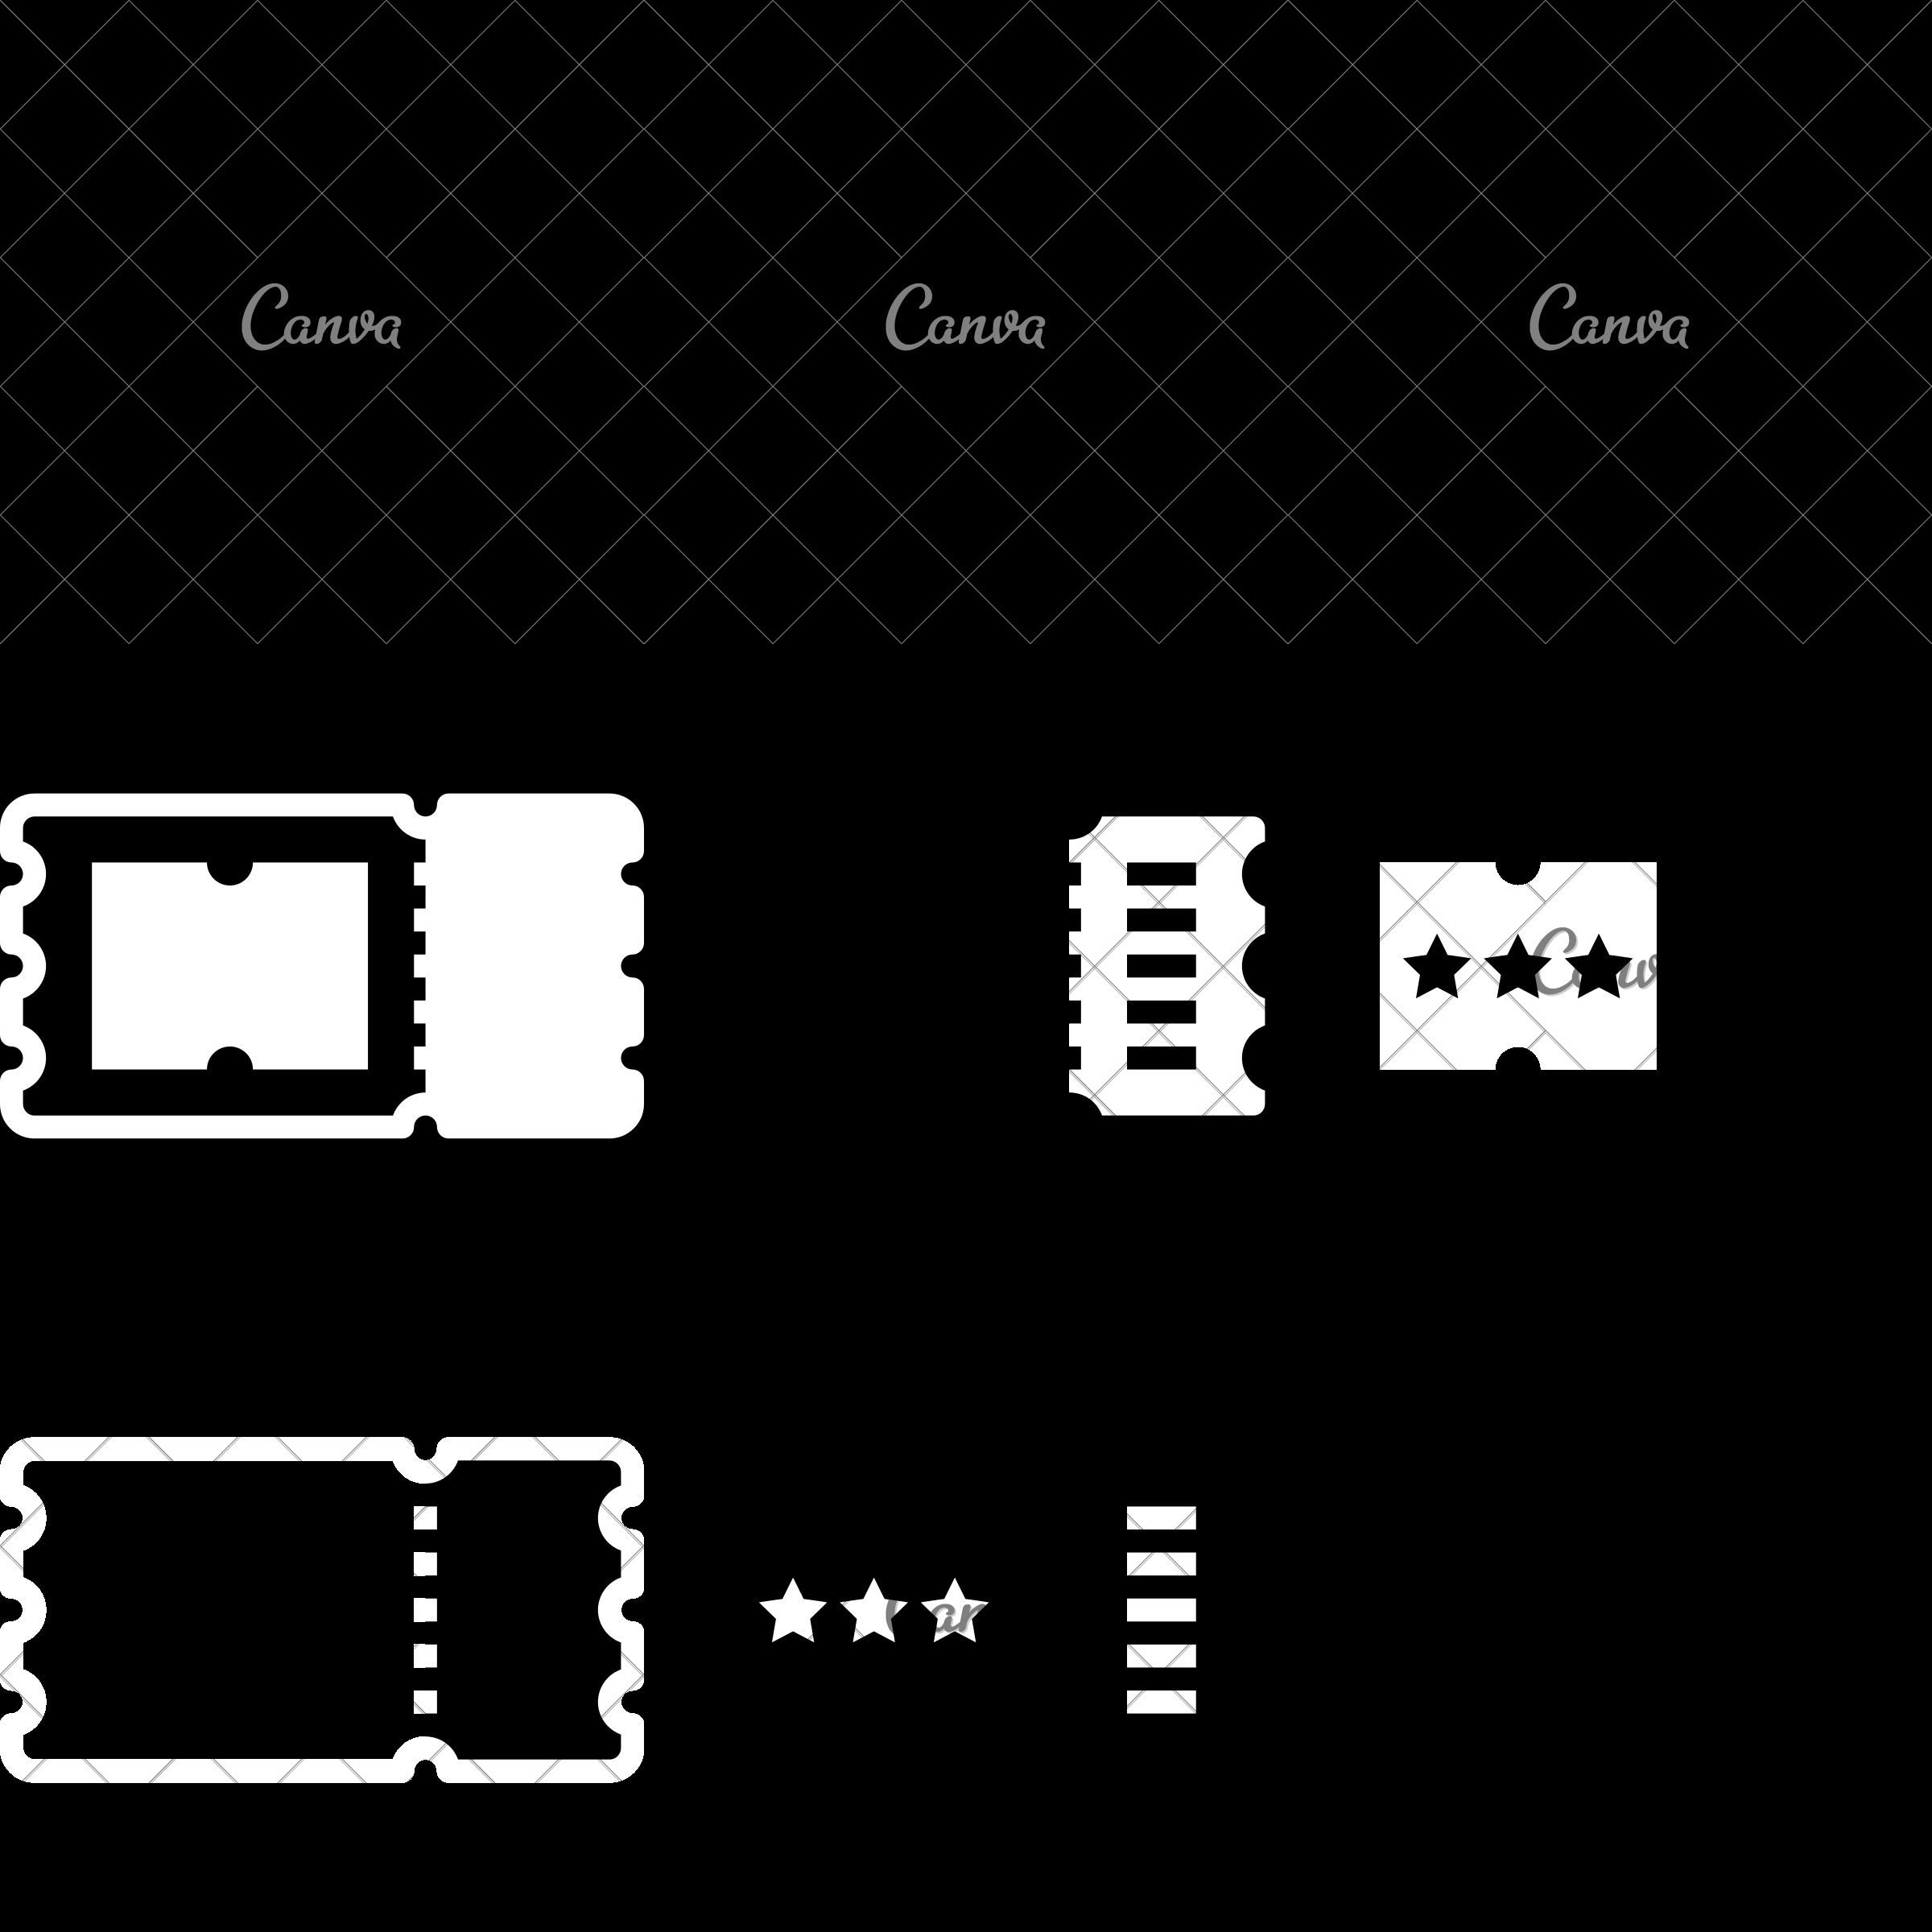 Cinema Ticket  Icons By Canva throughout Canva Ticket Template